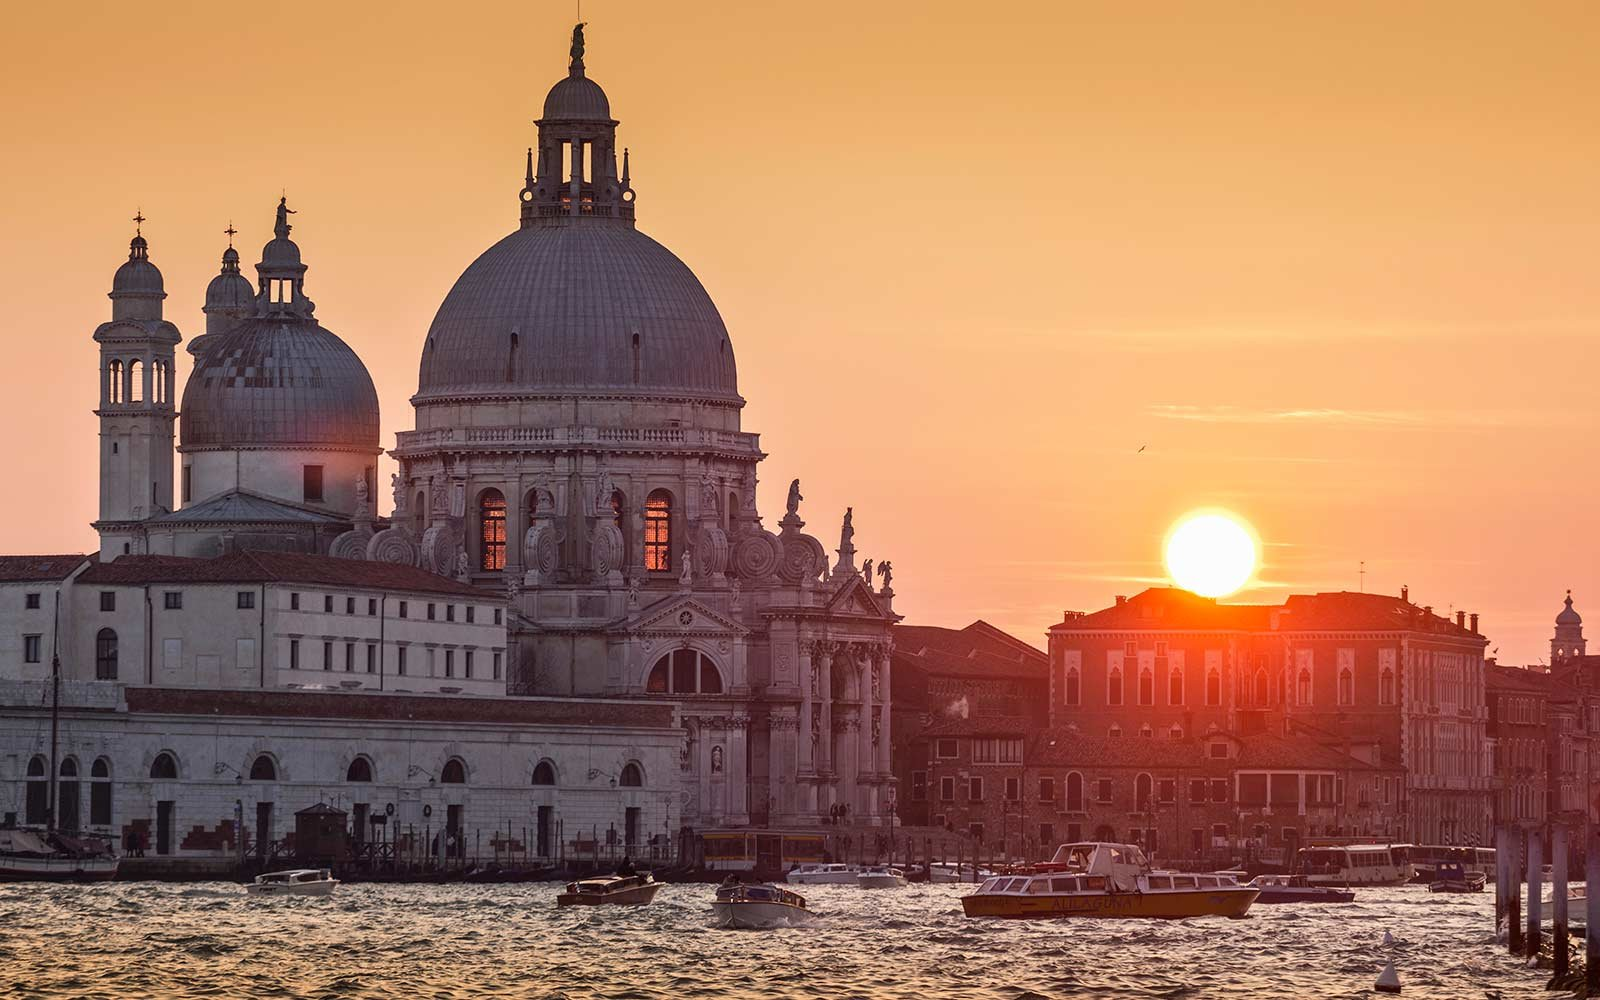 World s Best Awards  Most Romantic Cities. The 20 Most Romantic Cities in the World   Travel   Leisure